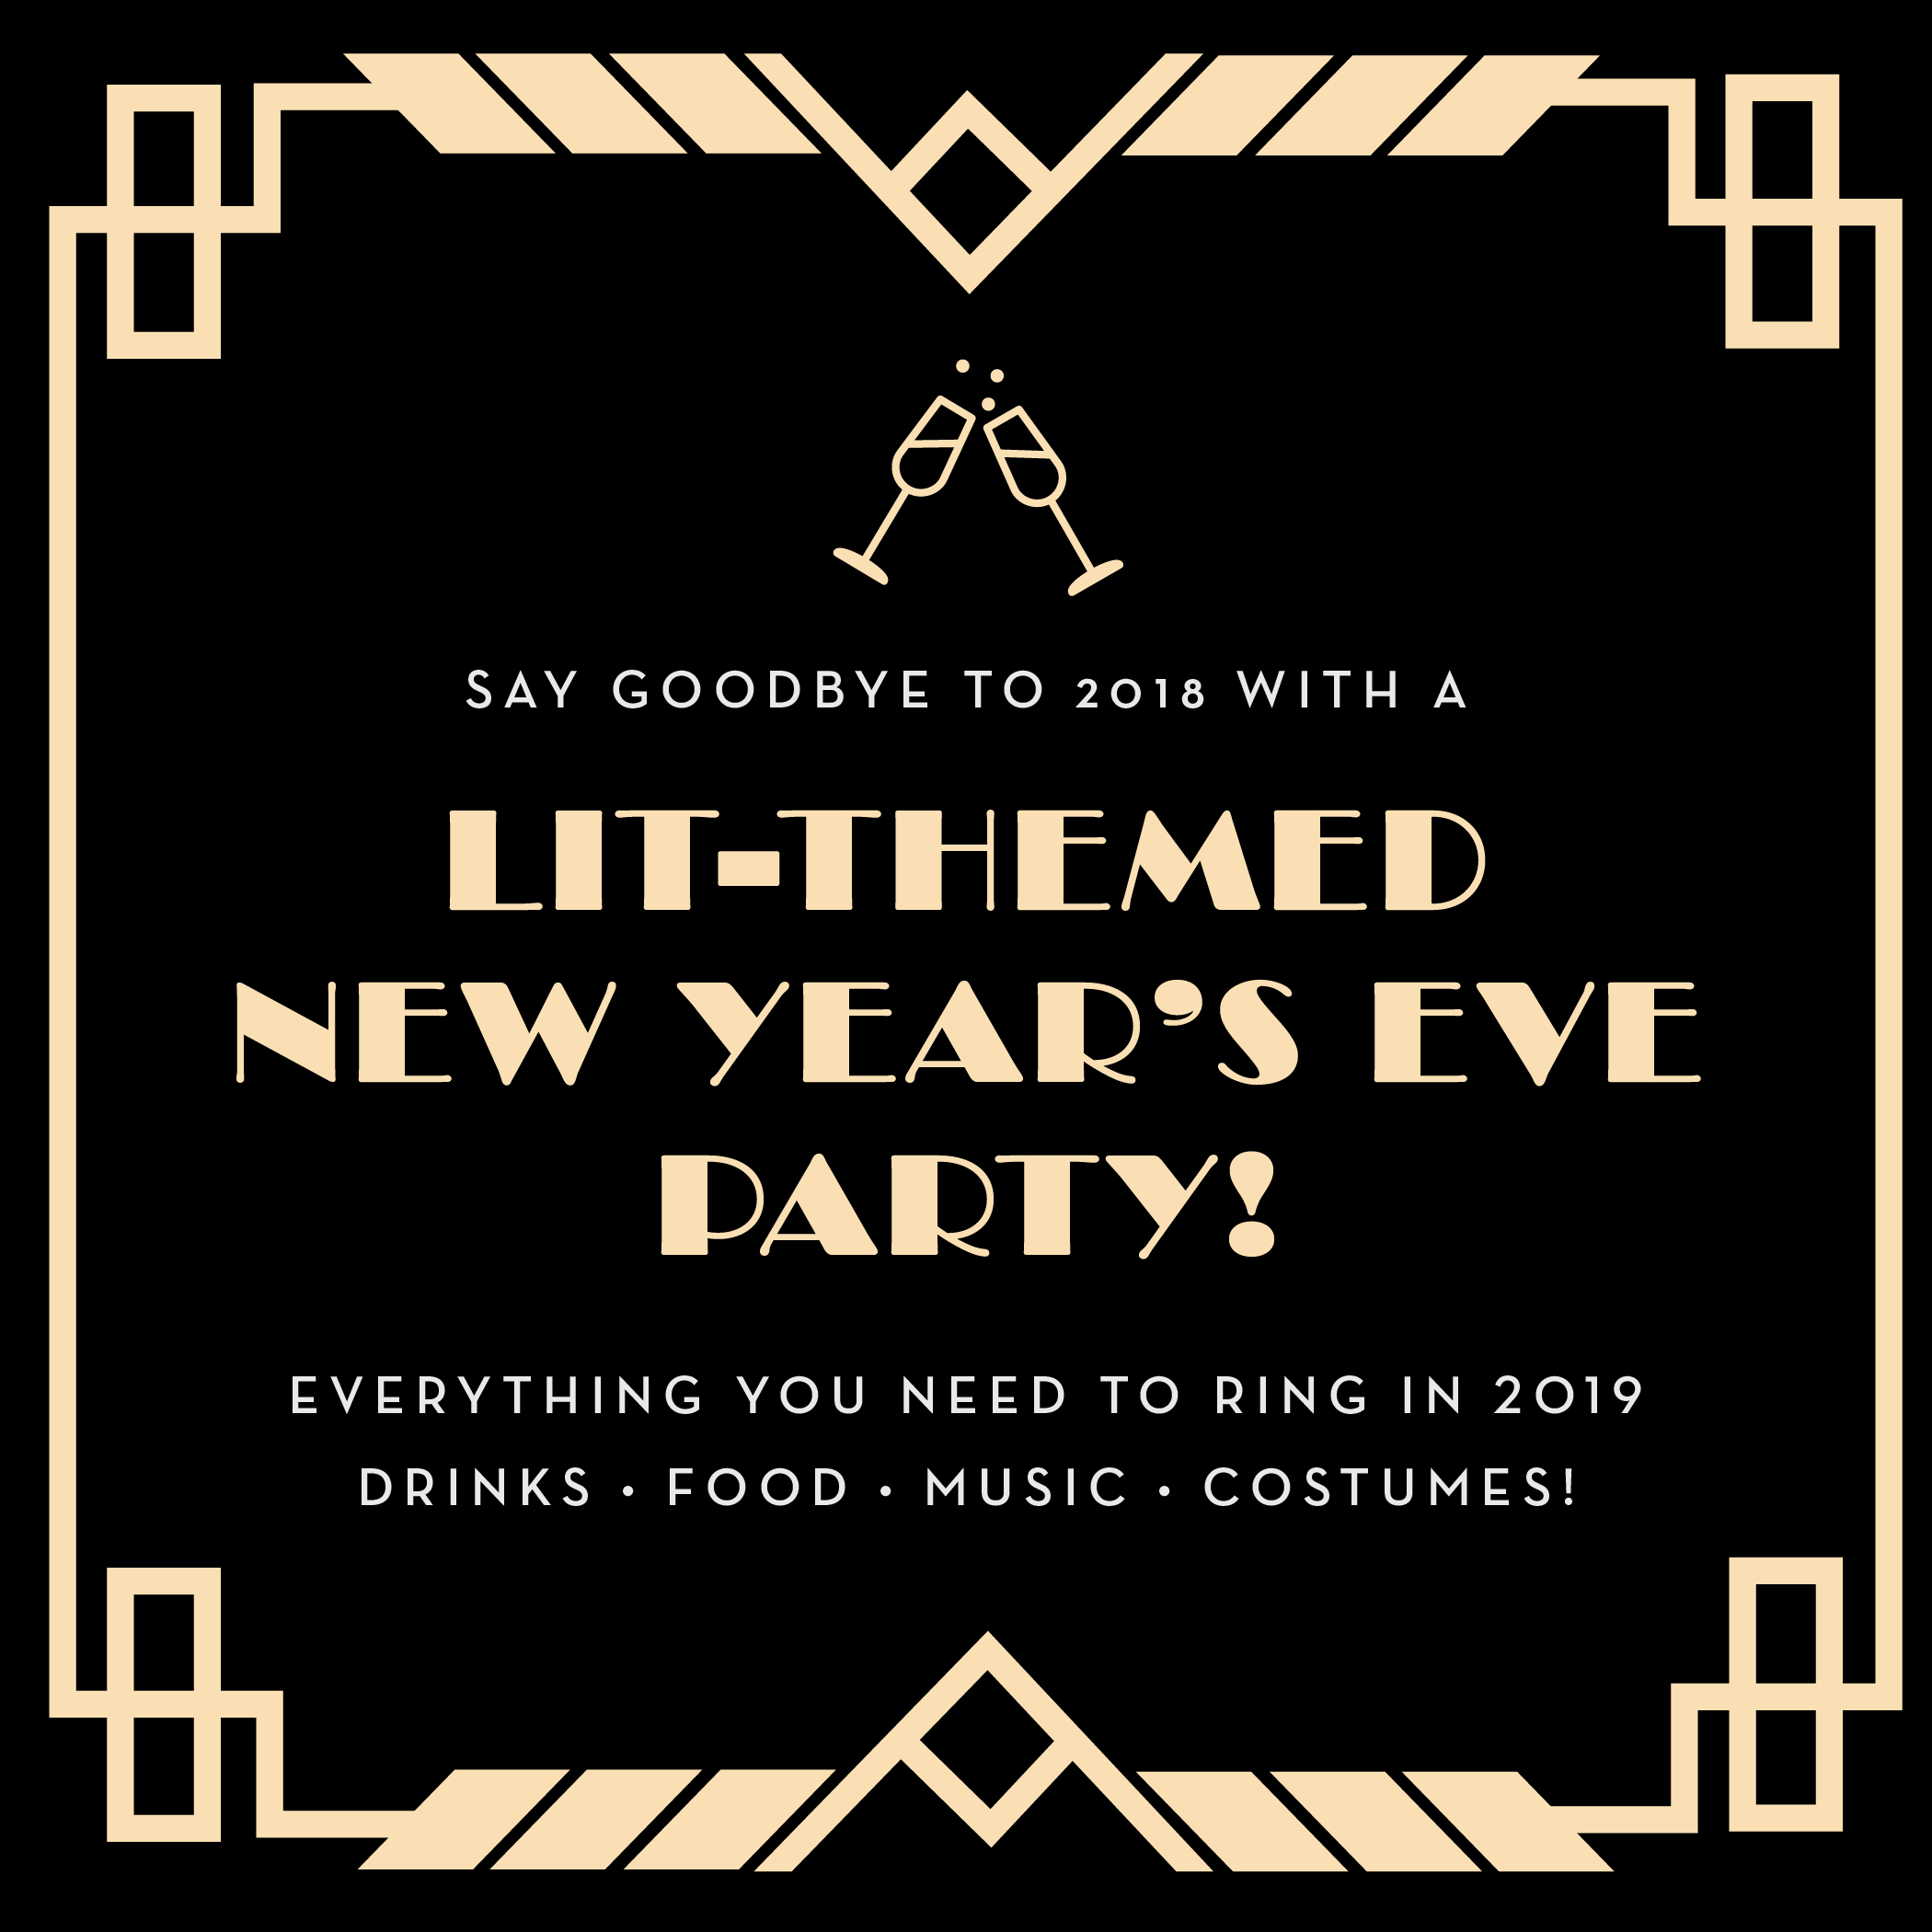 How to Throw a Great Literary-Themed New Year's Eve Party